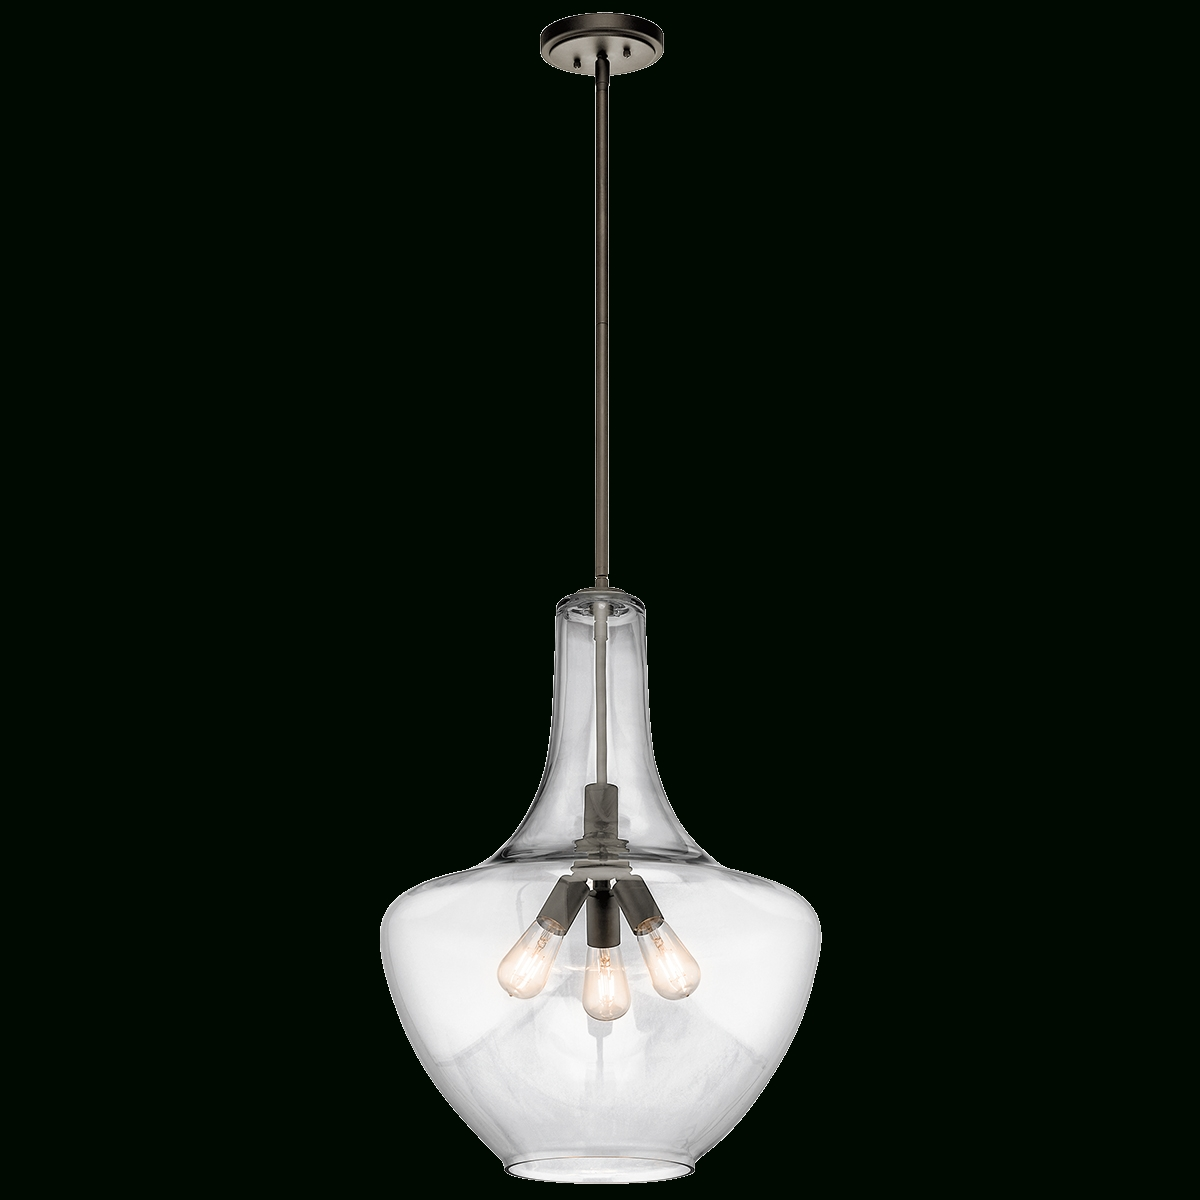 Everly 3 Light Pendant In Chrome Within Kichler Pendant Lights Fixtures (View 13 of 15)